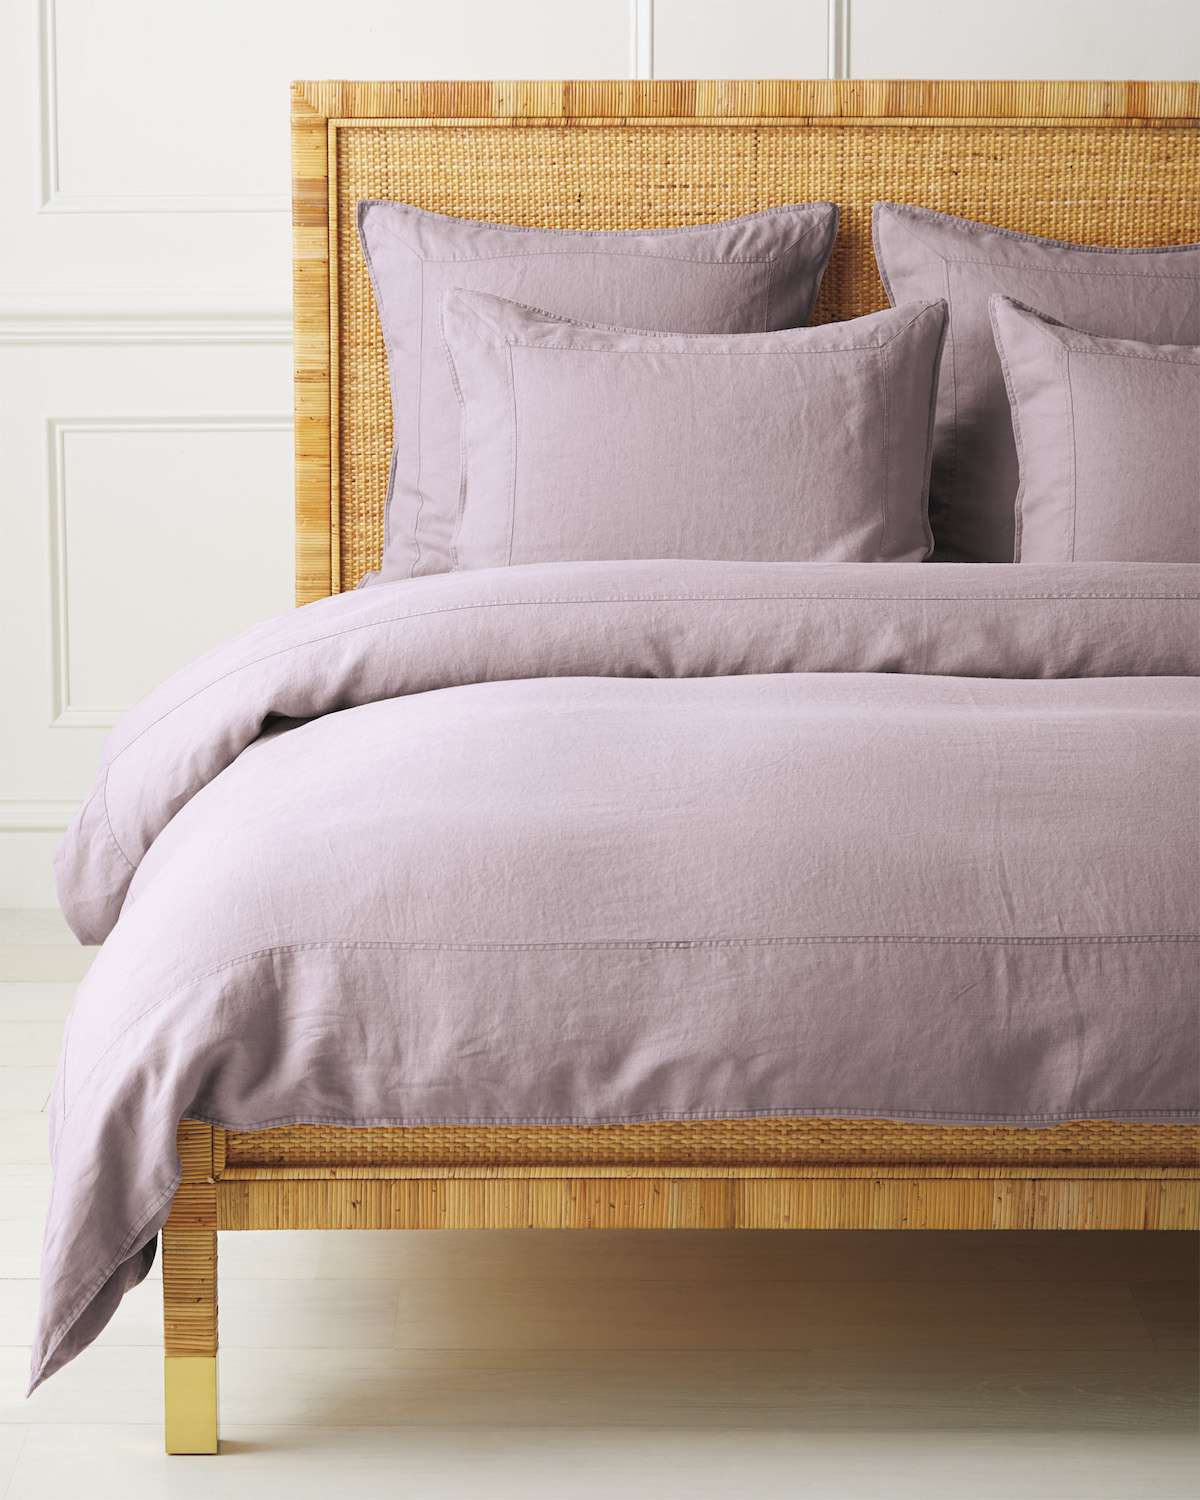 A lavender bedspread, currently for sale at Serena & Lily